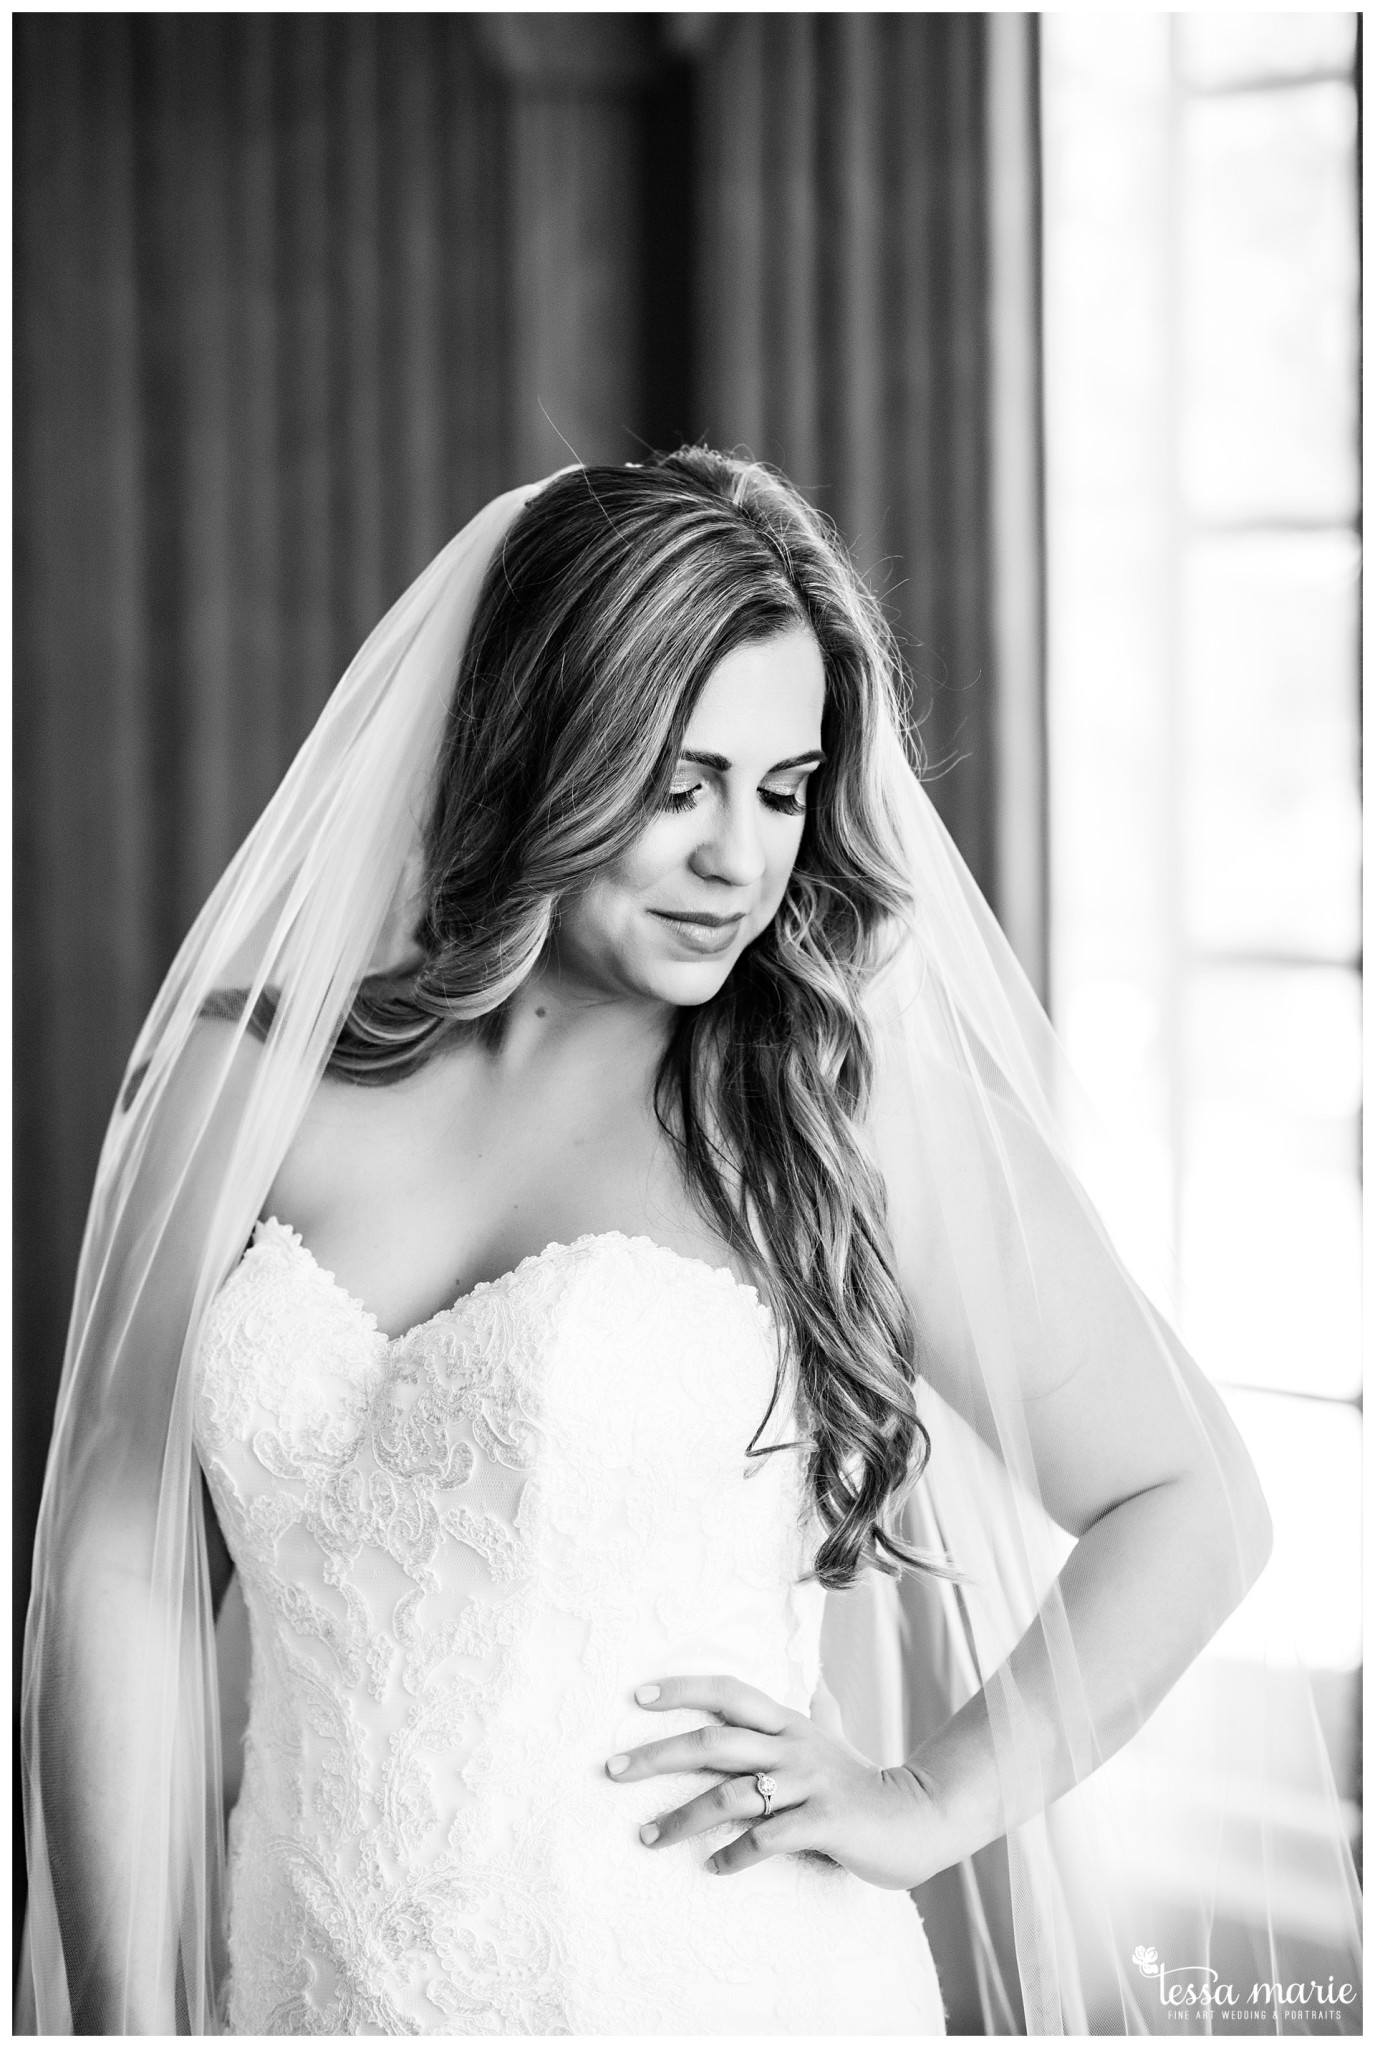 tessa_marie_weddings_legacy_story_focused_wedding_pictures_atlanta_wedding_photographer_0074